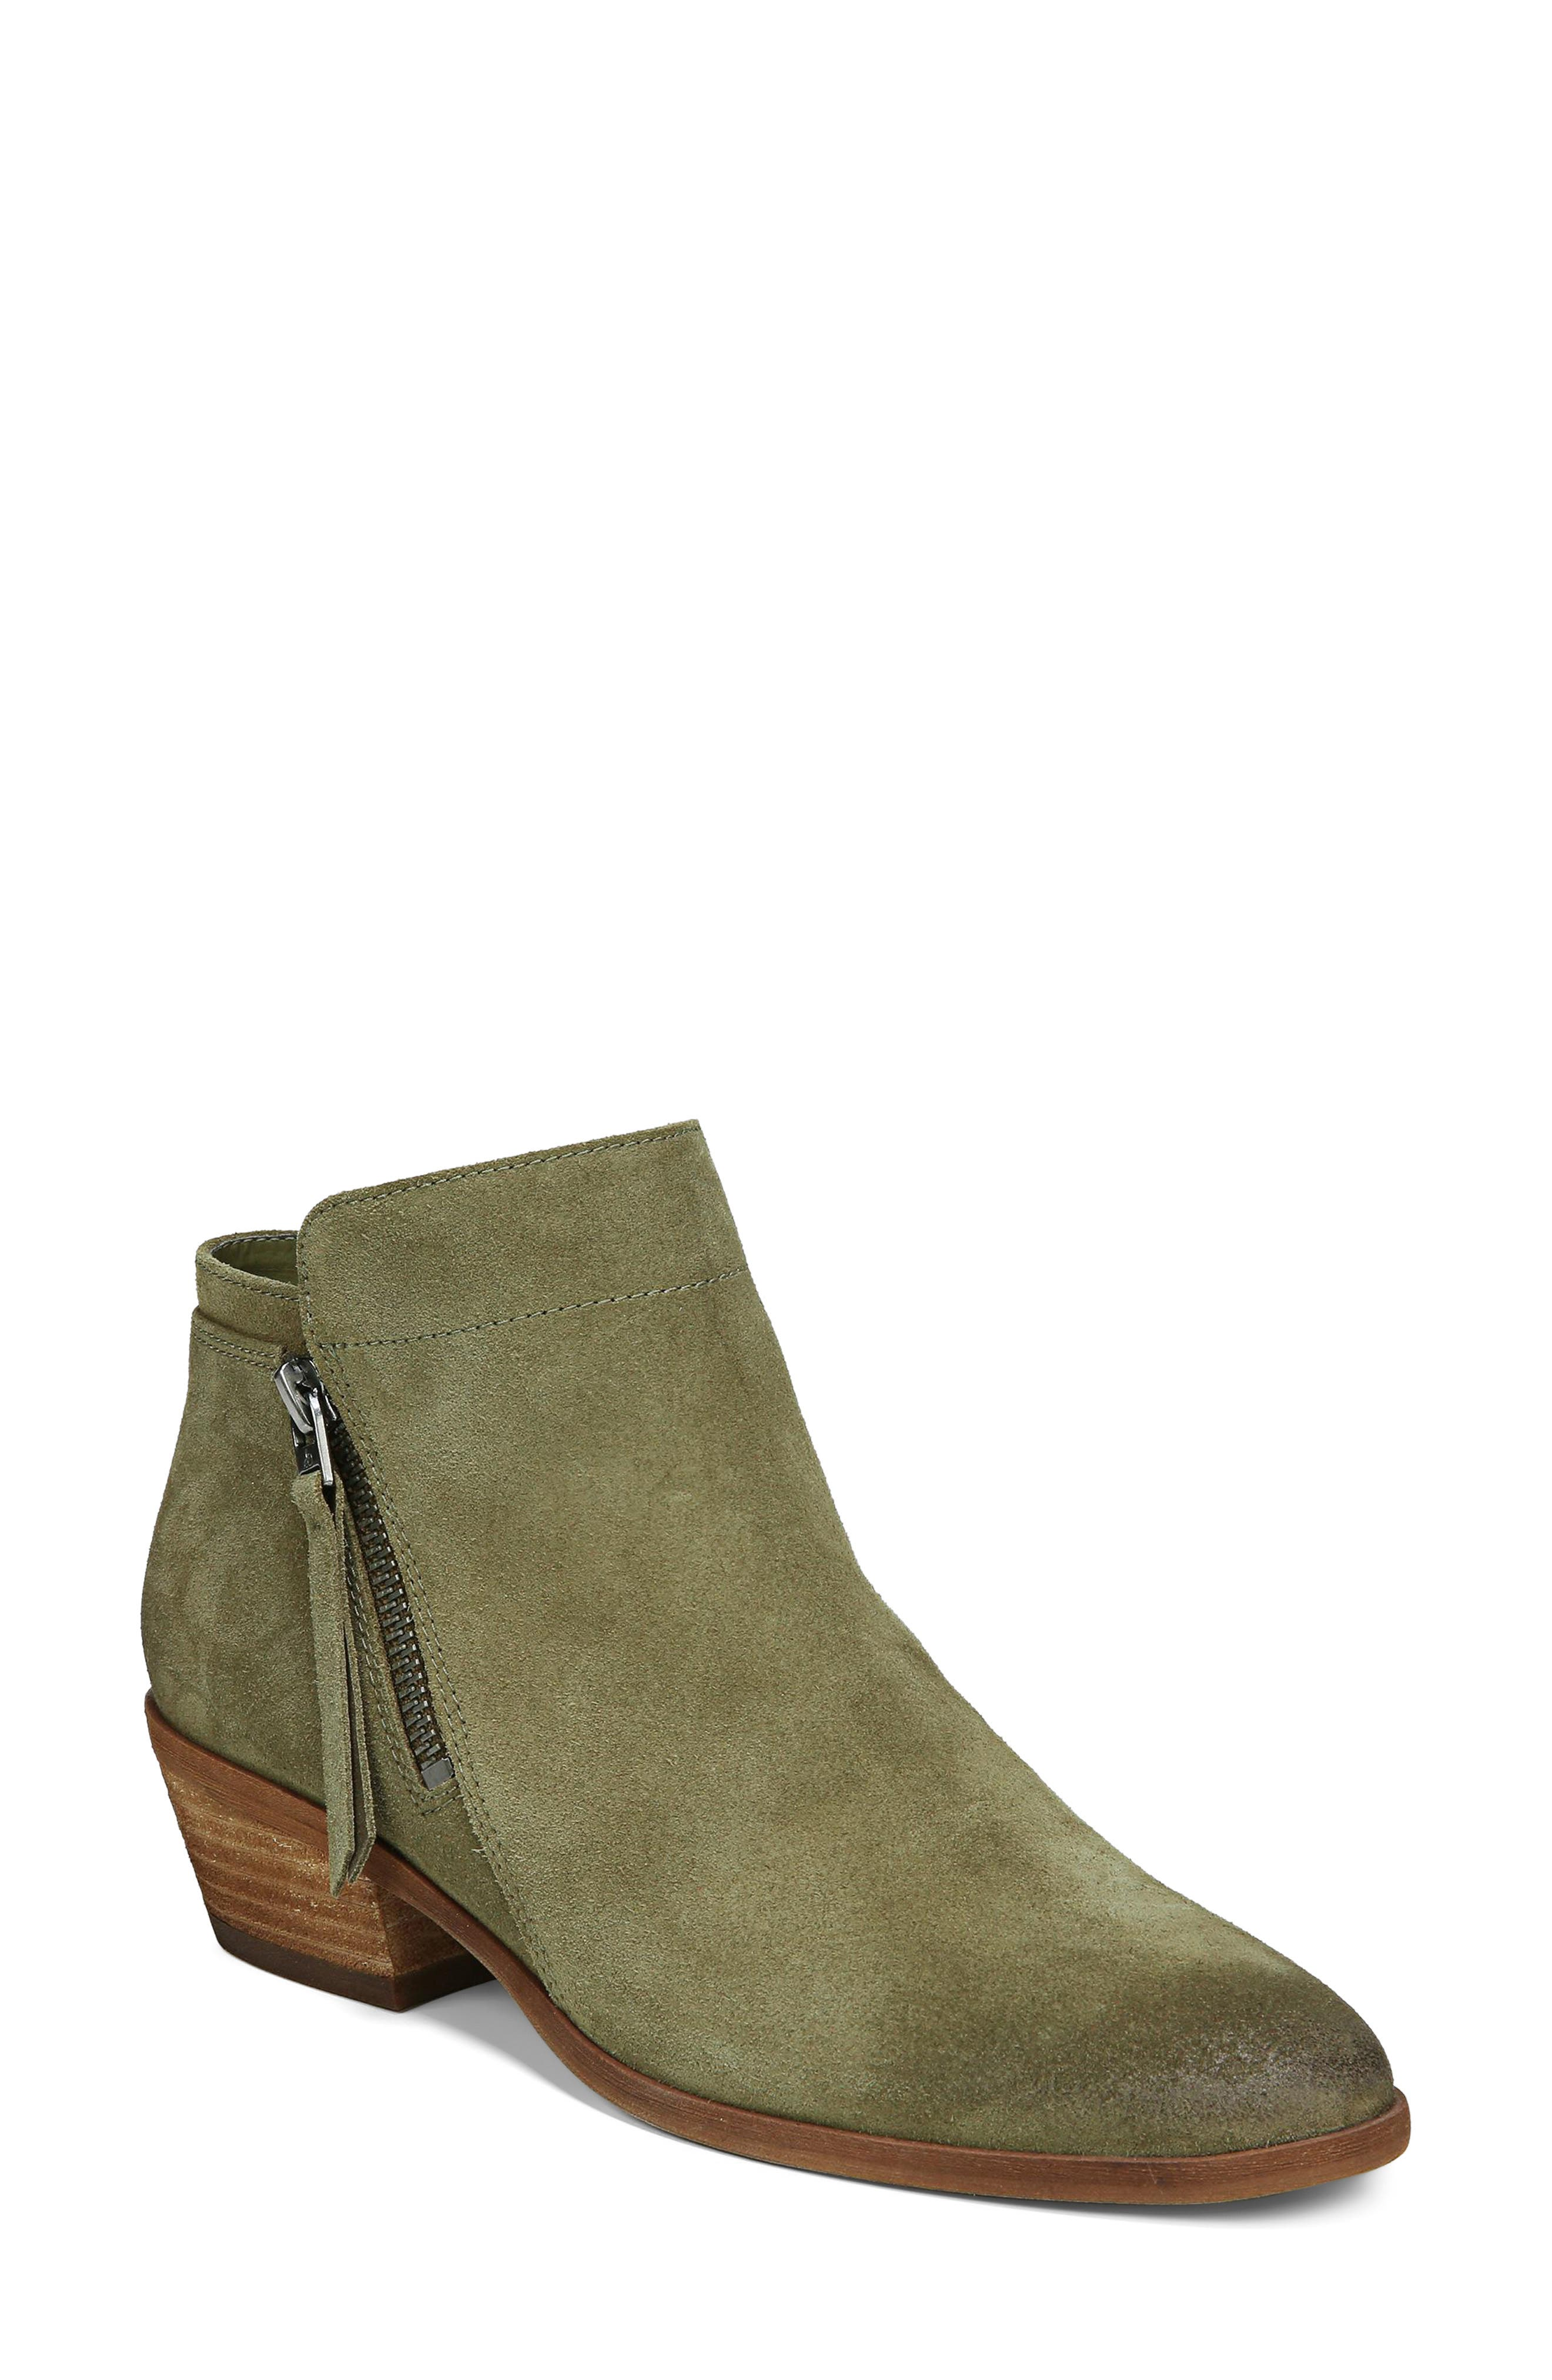 Sam Edelman Packer Bootie- Green